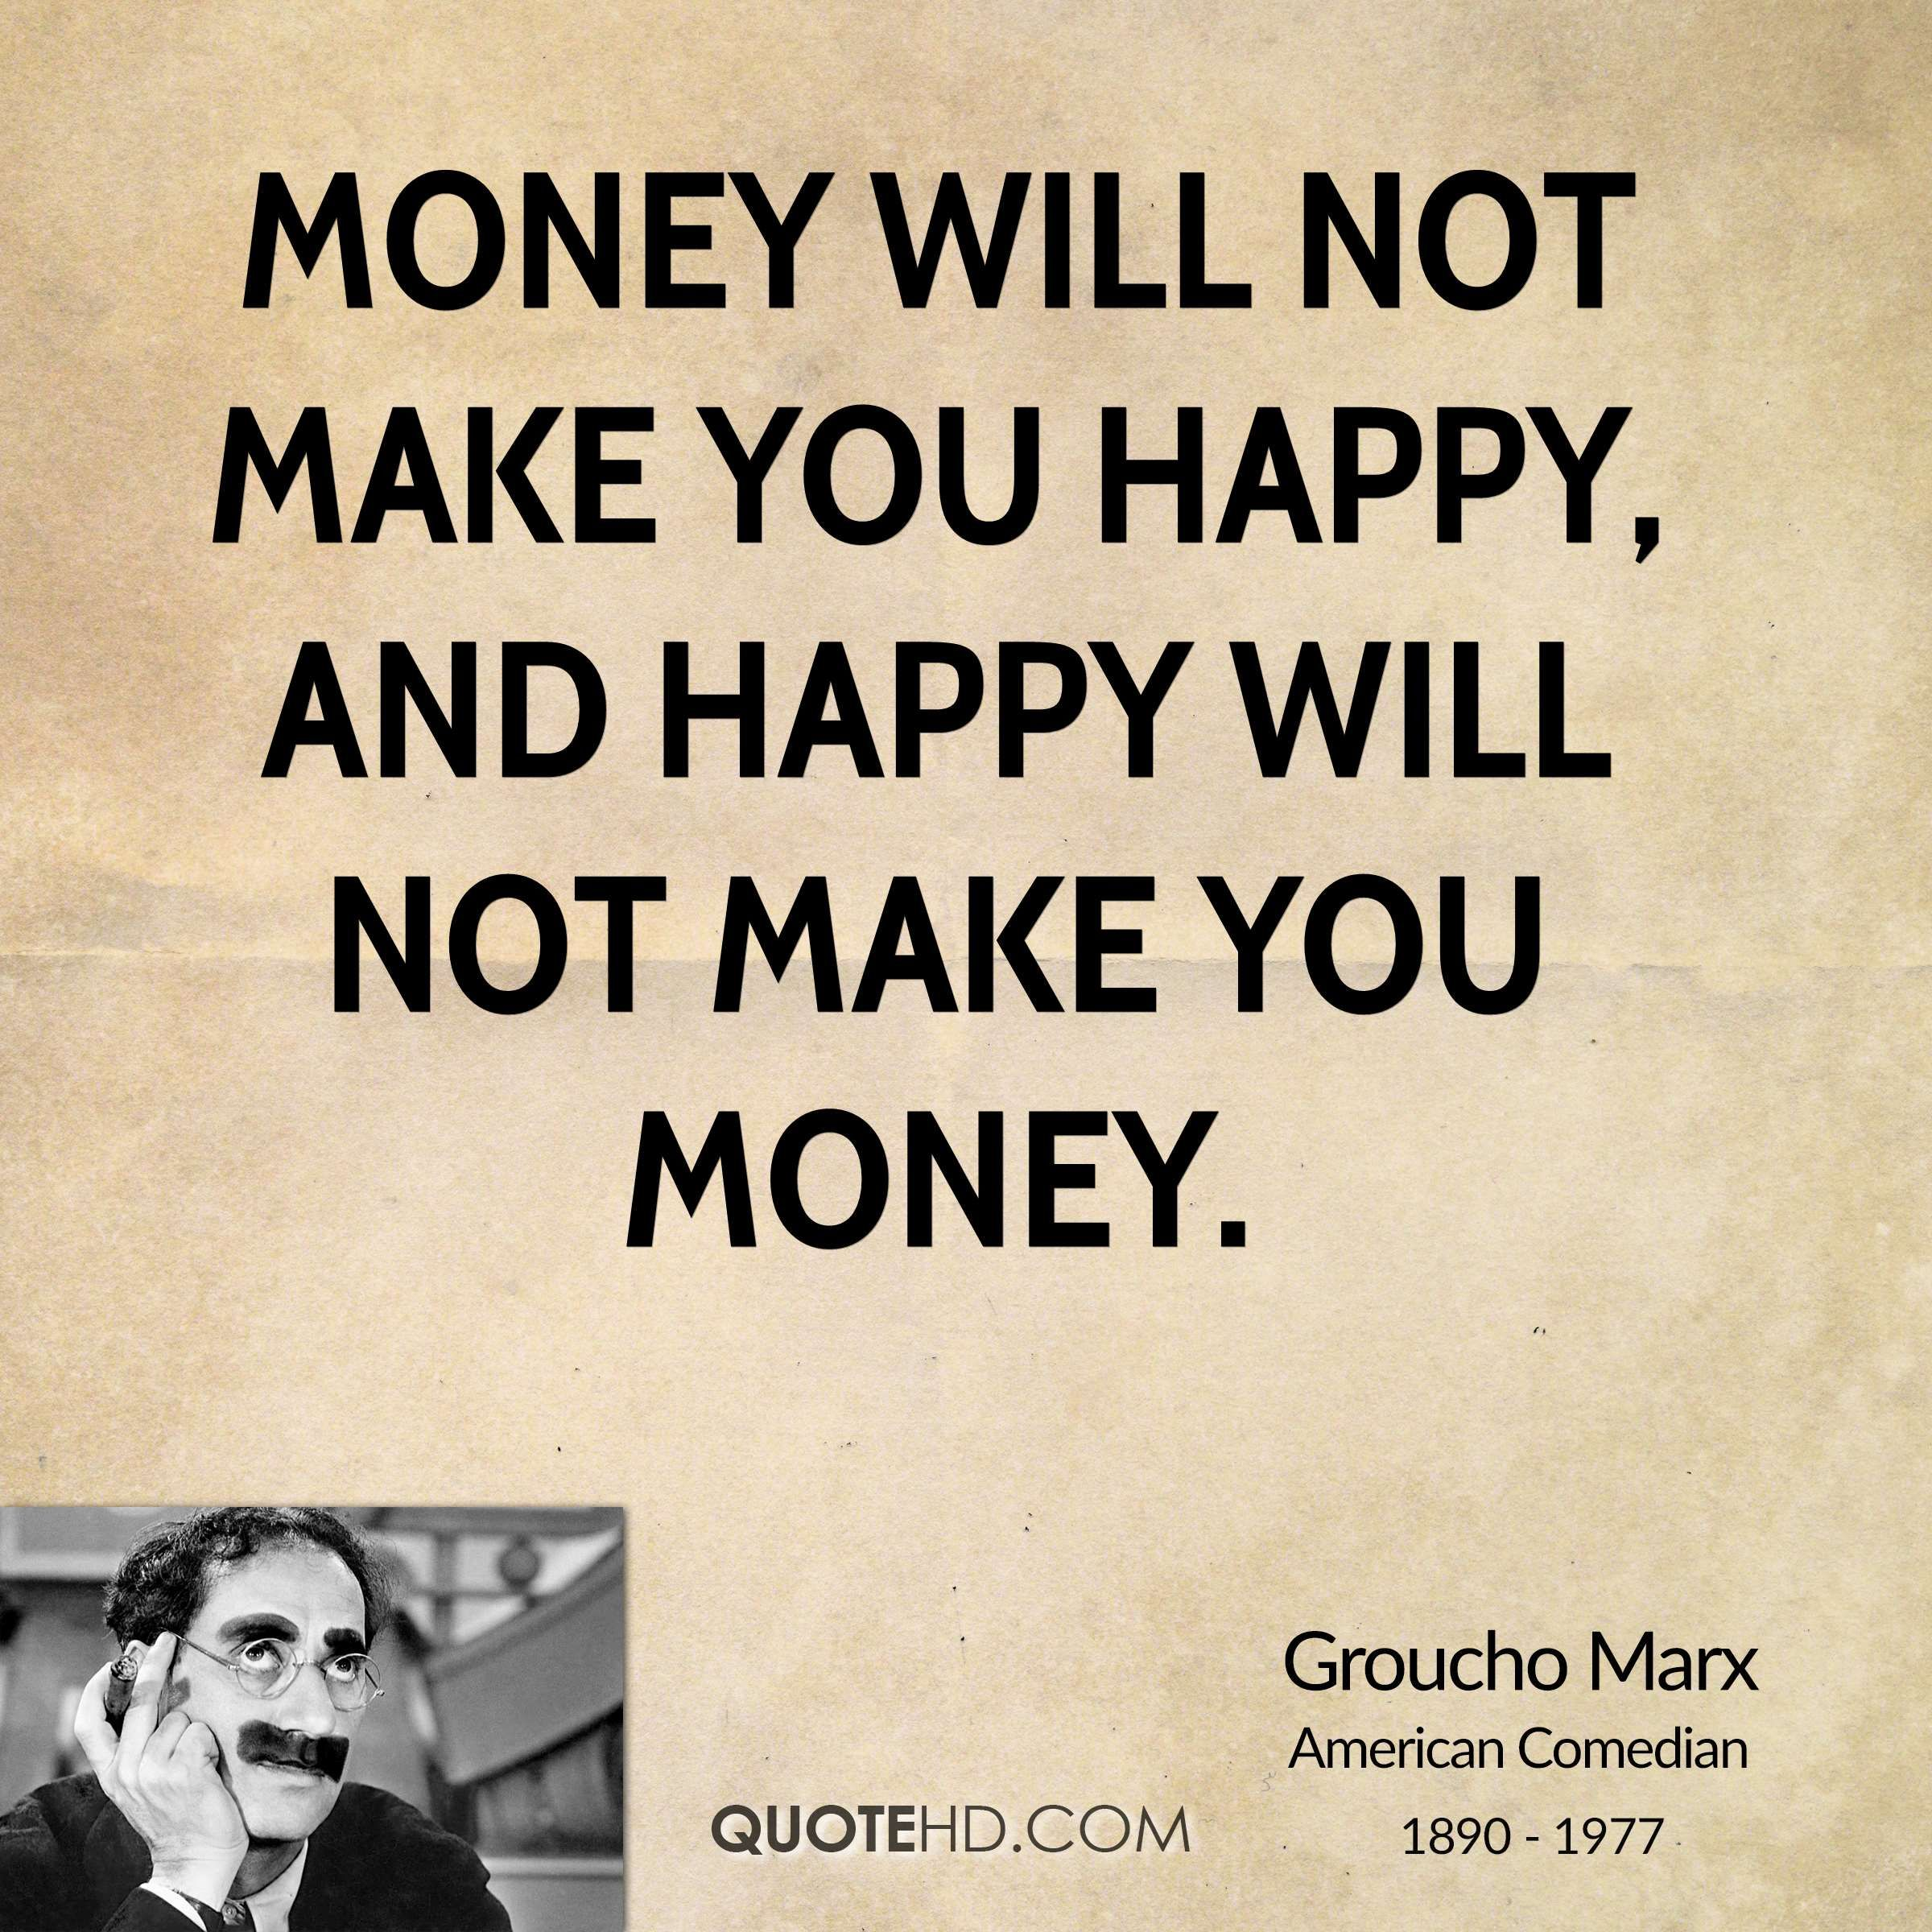 Quotes About Money Not Buying Happiness: Groucho Marx Quotes - Google Search